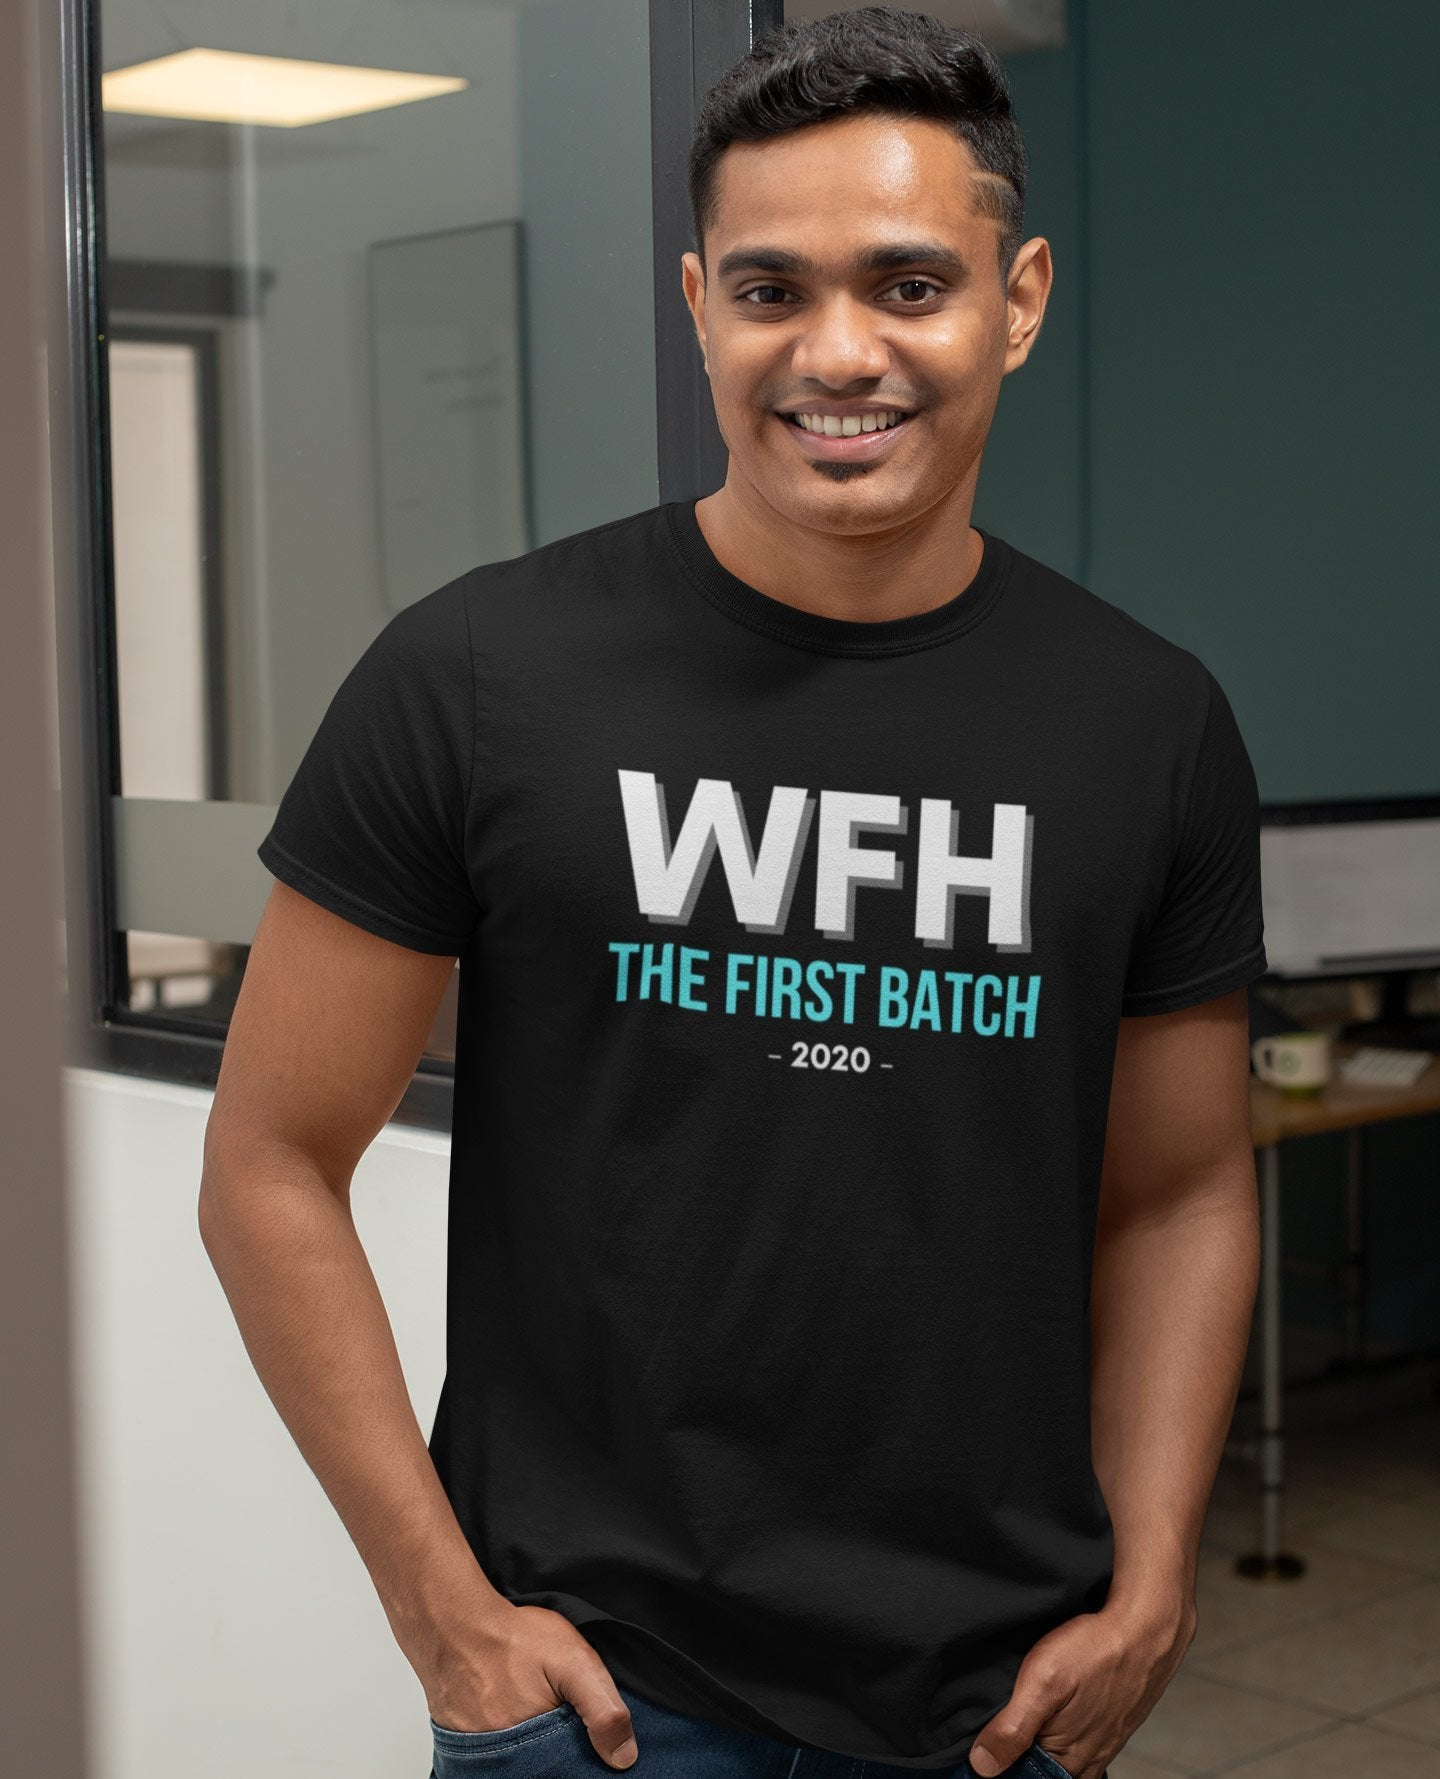 WFH The First Batch 2020 T-Shirt